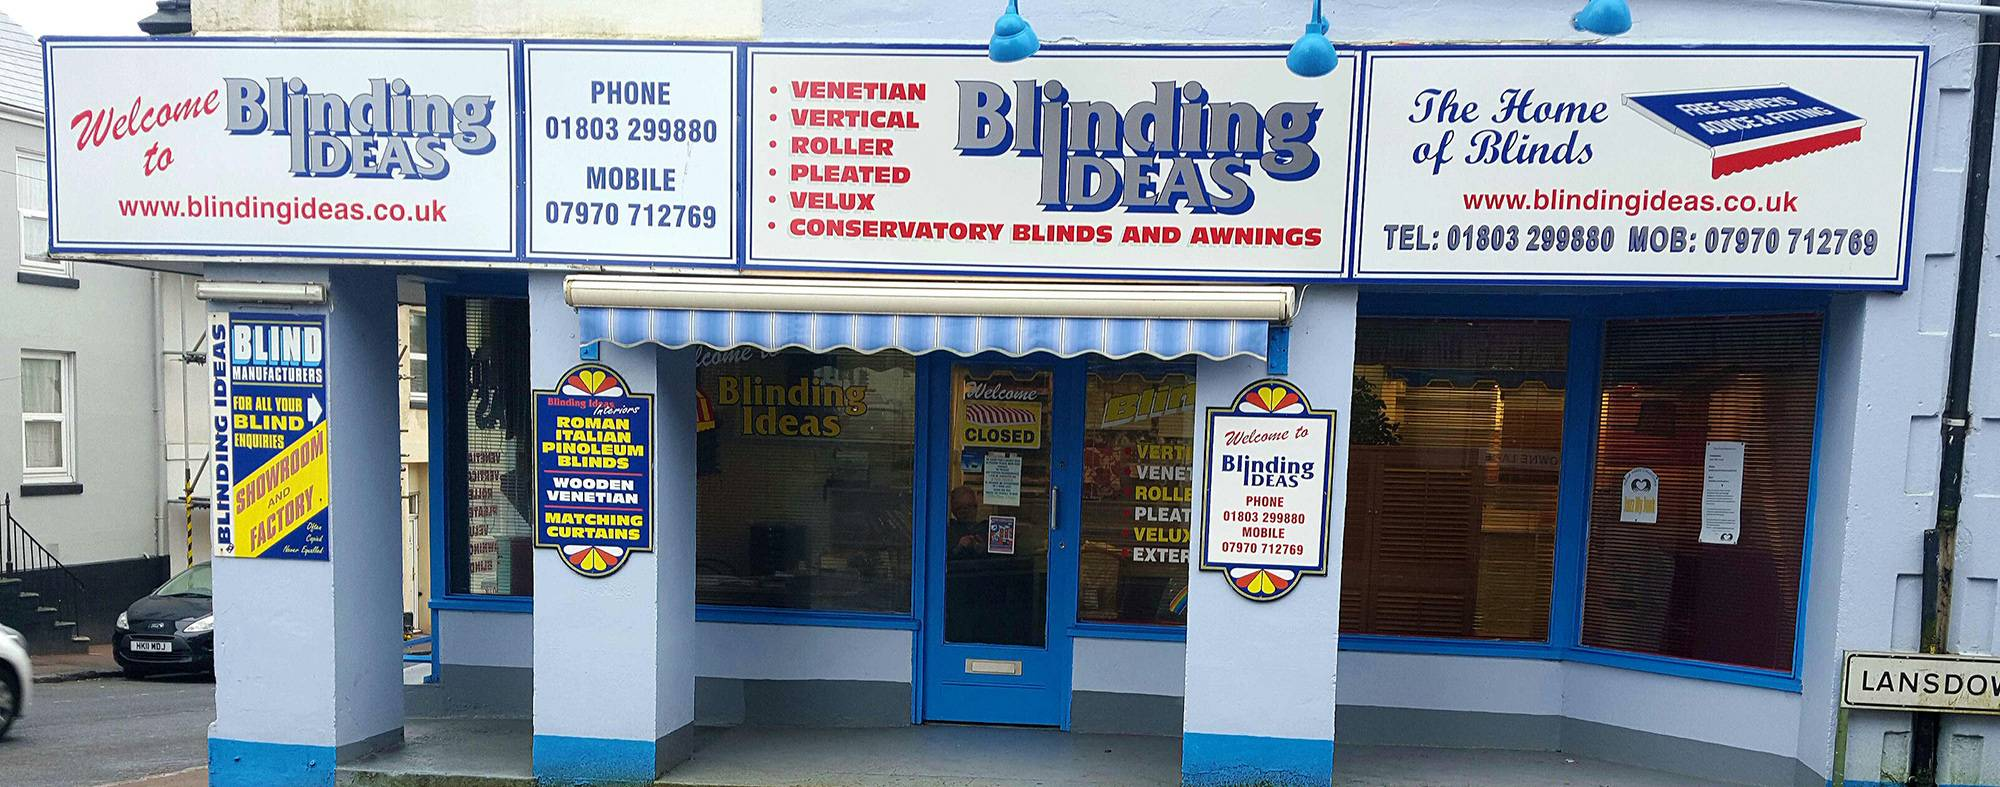 Blinding ideas shop front